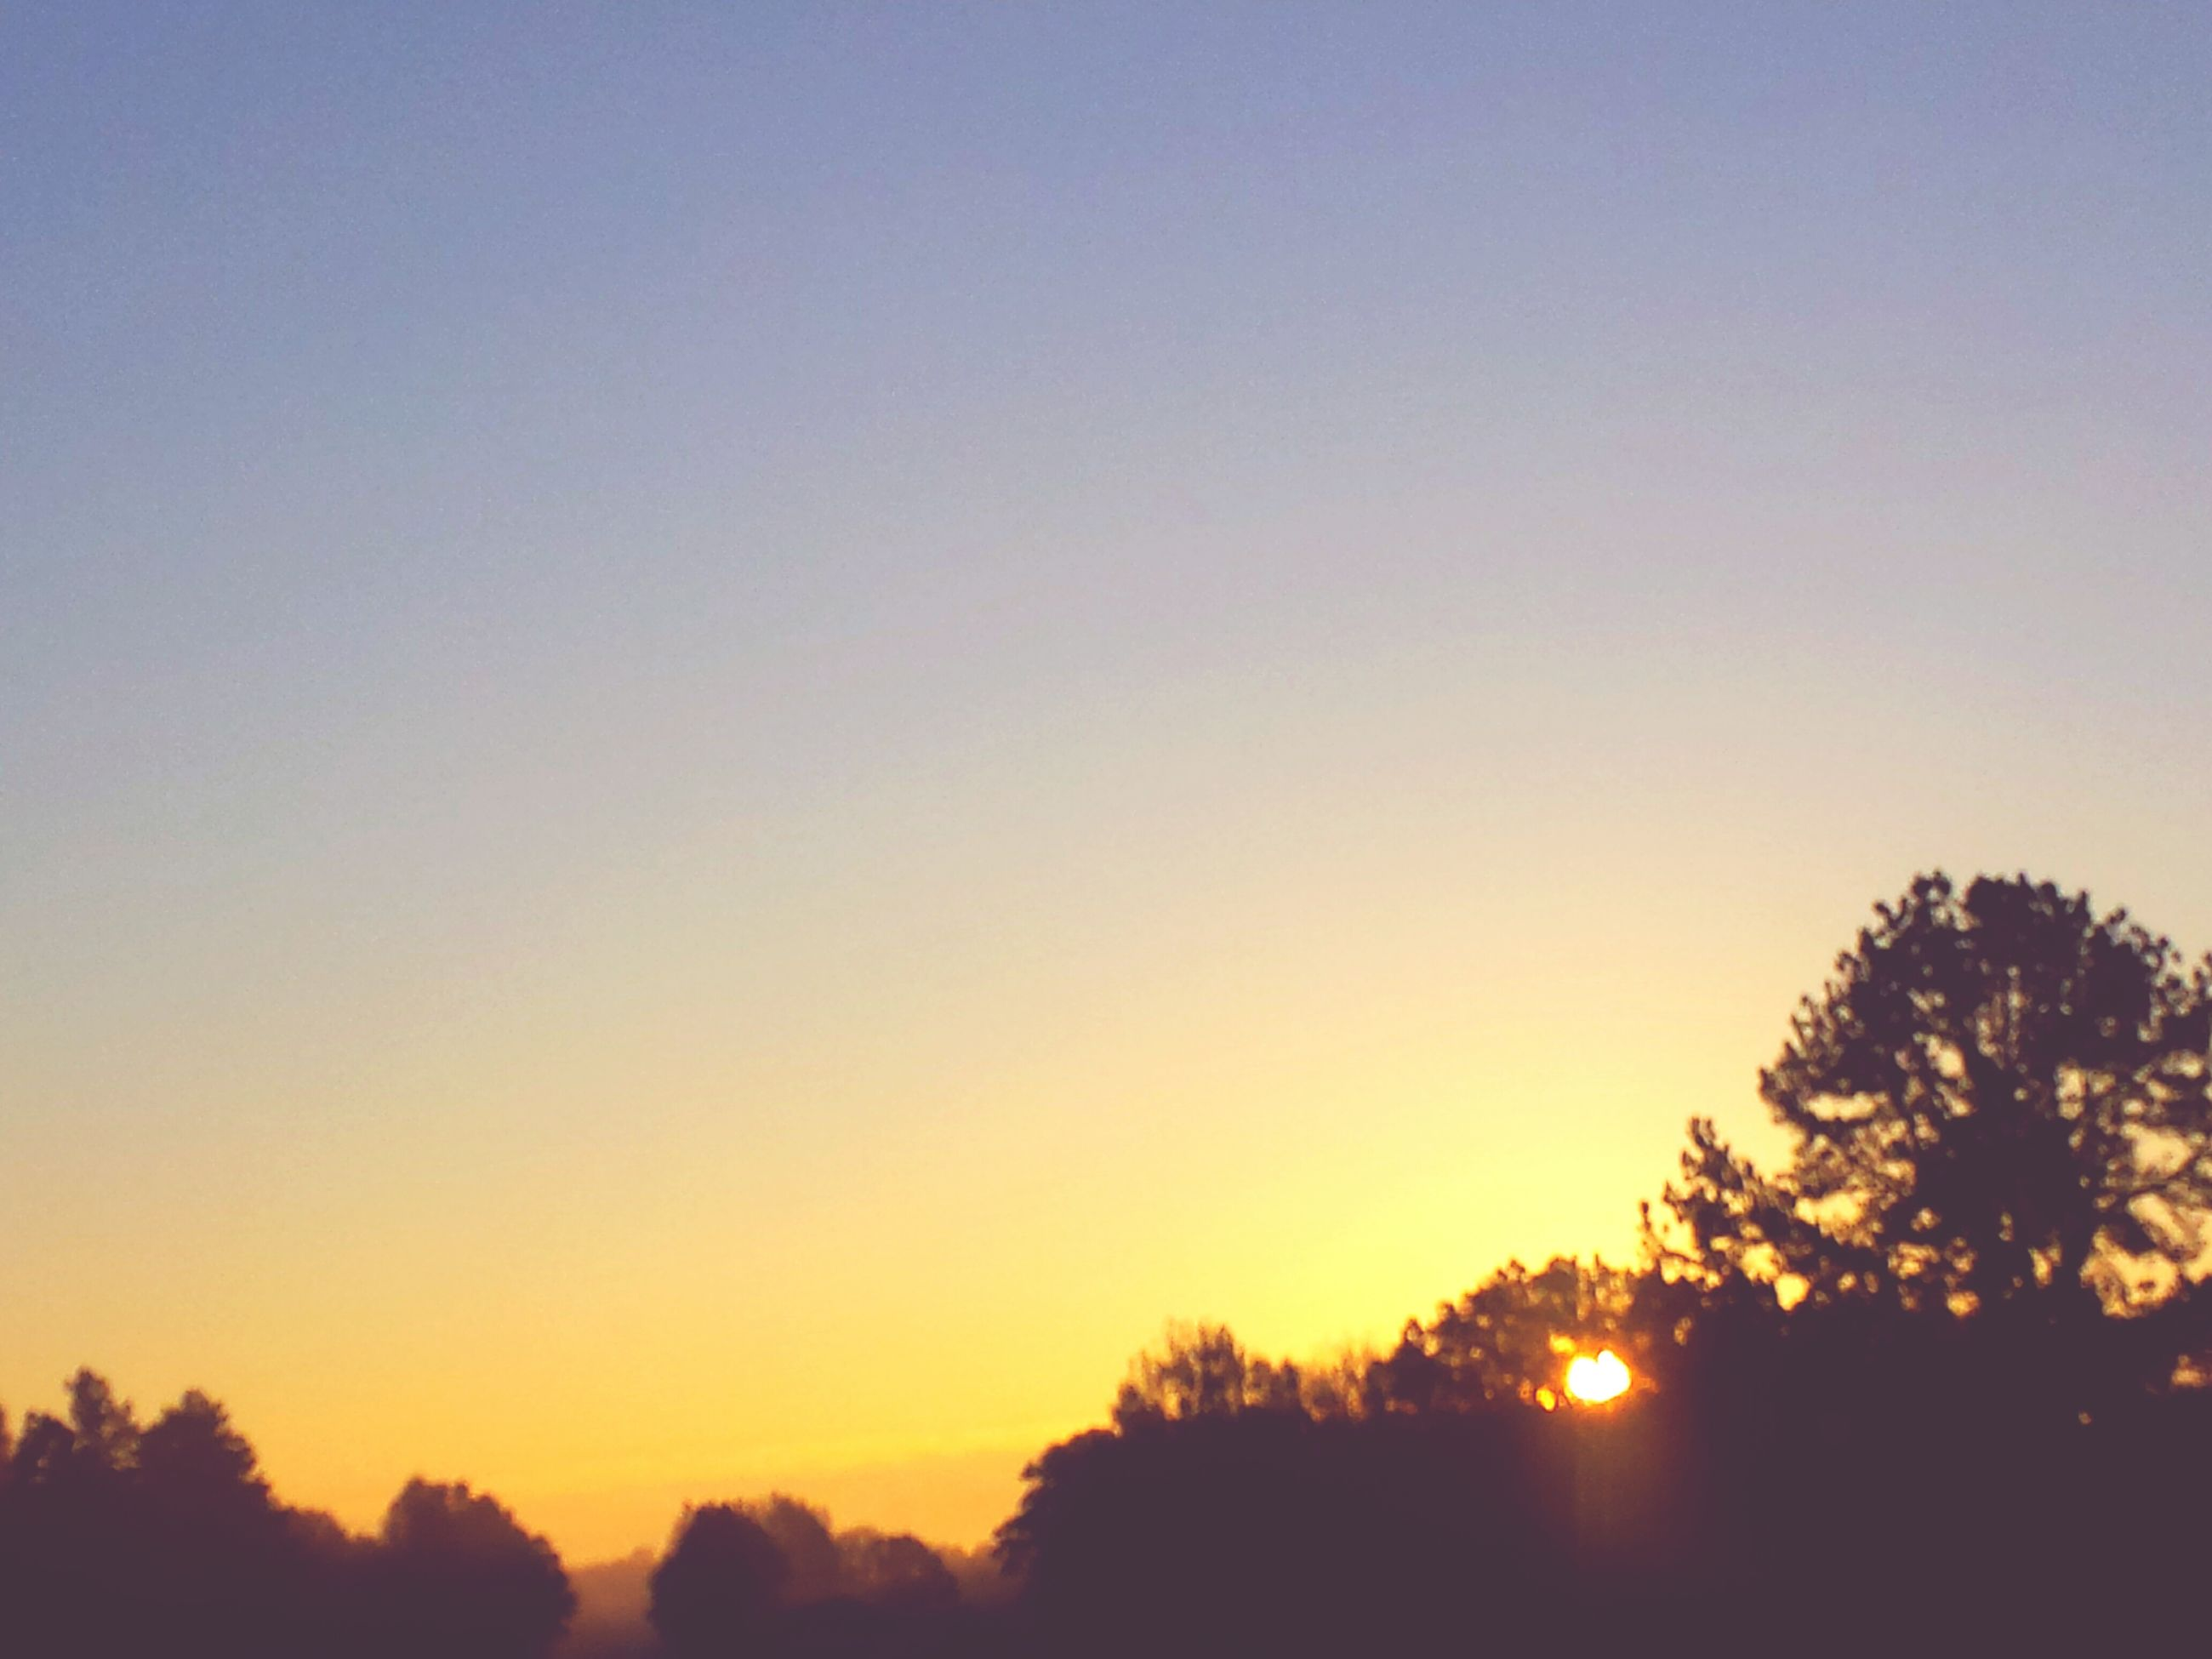 sunset, silhouette, tree, tranquil scene, clear sky, tranquility, scenics, beauty in nature, copy space, orange color, sun, nature, idyllic, landscape, growth, sunlight, sky, outdoors, no people, non-urban scene